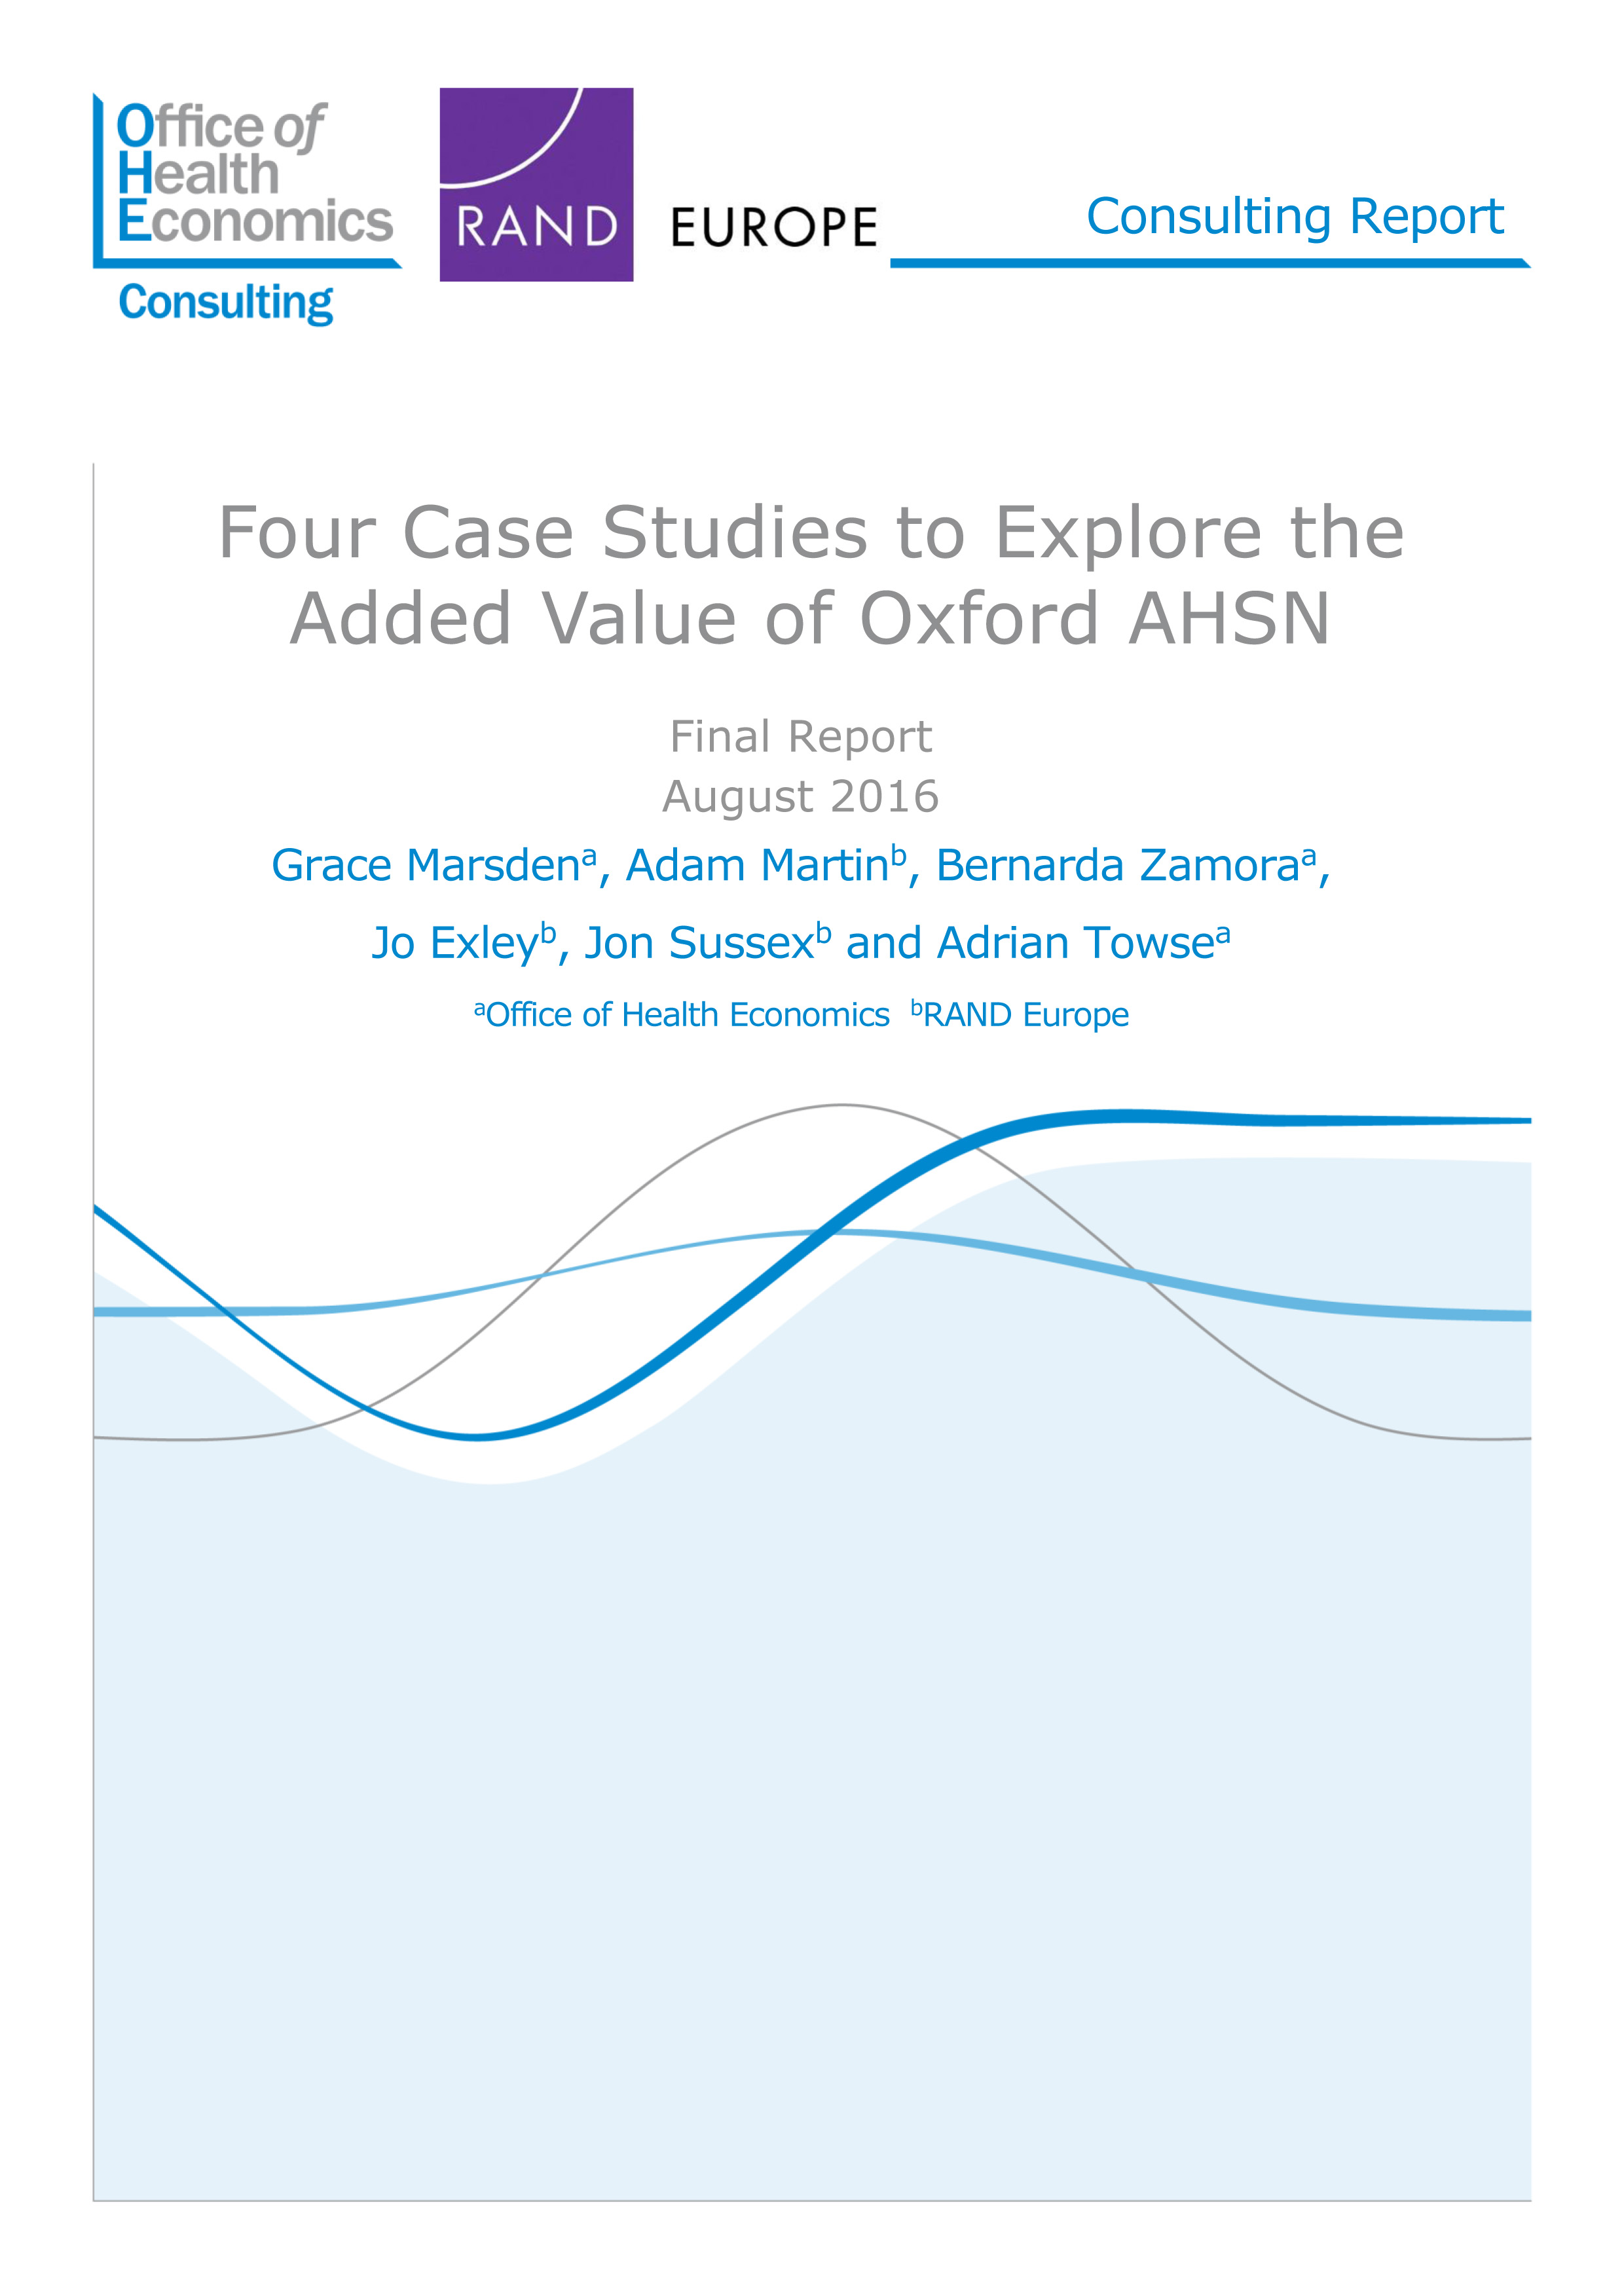 OHE report assessing added value of Oxford AHSN